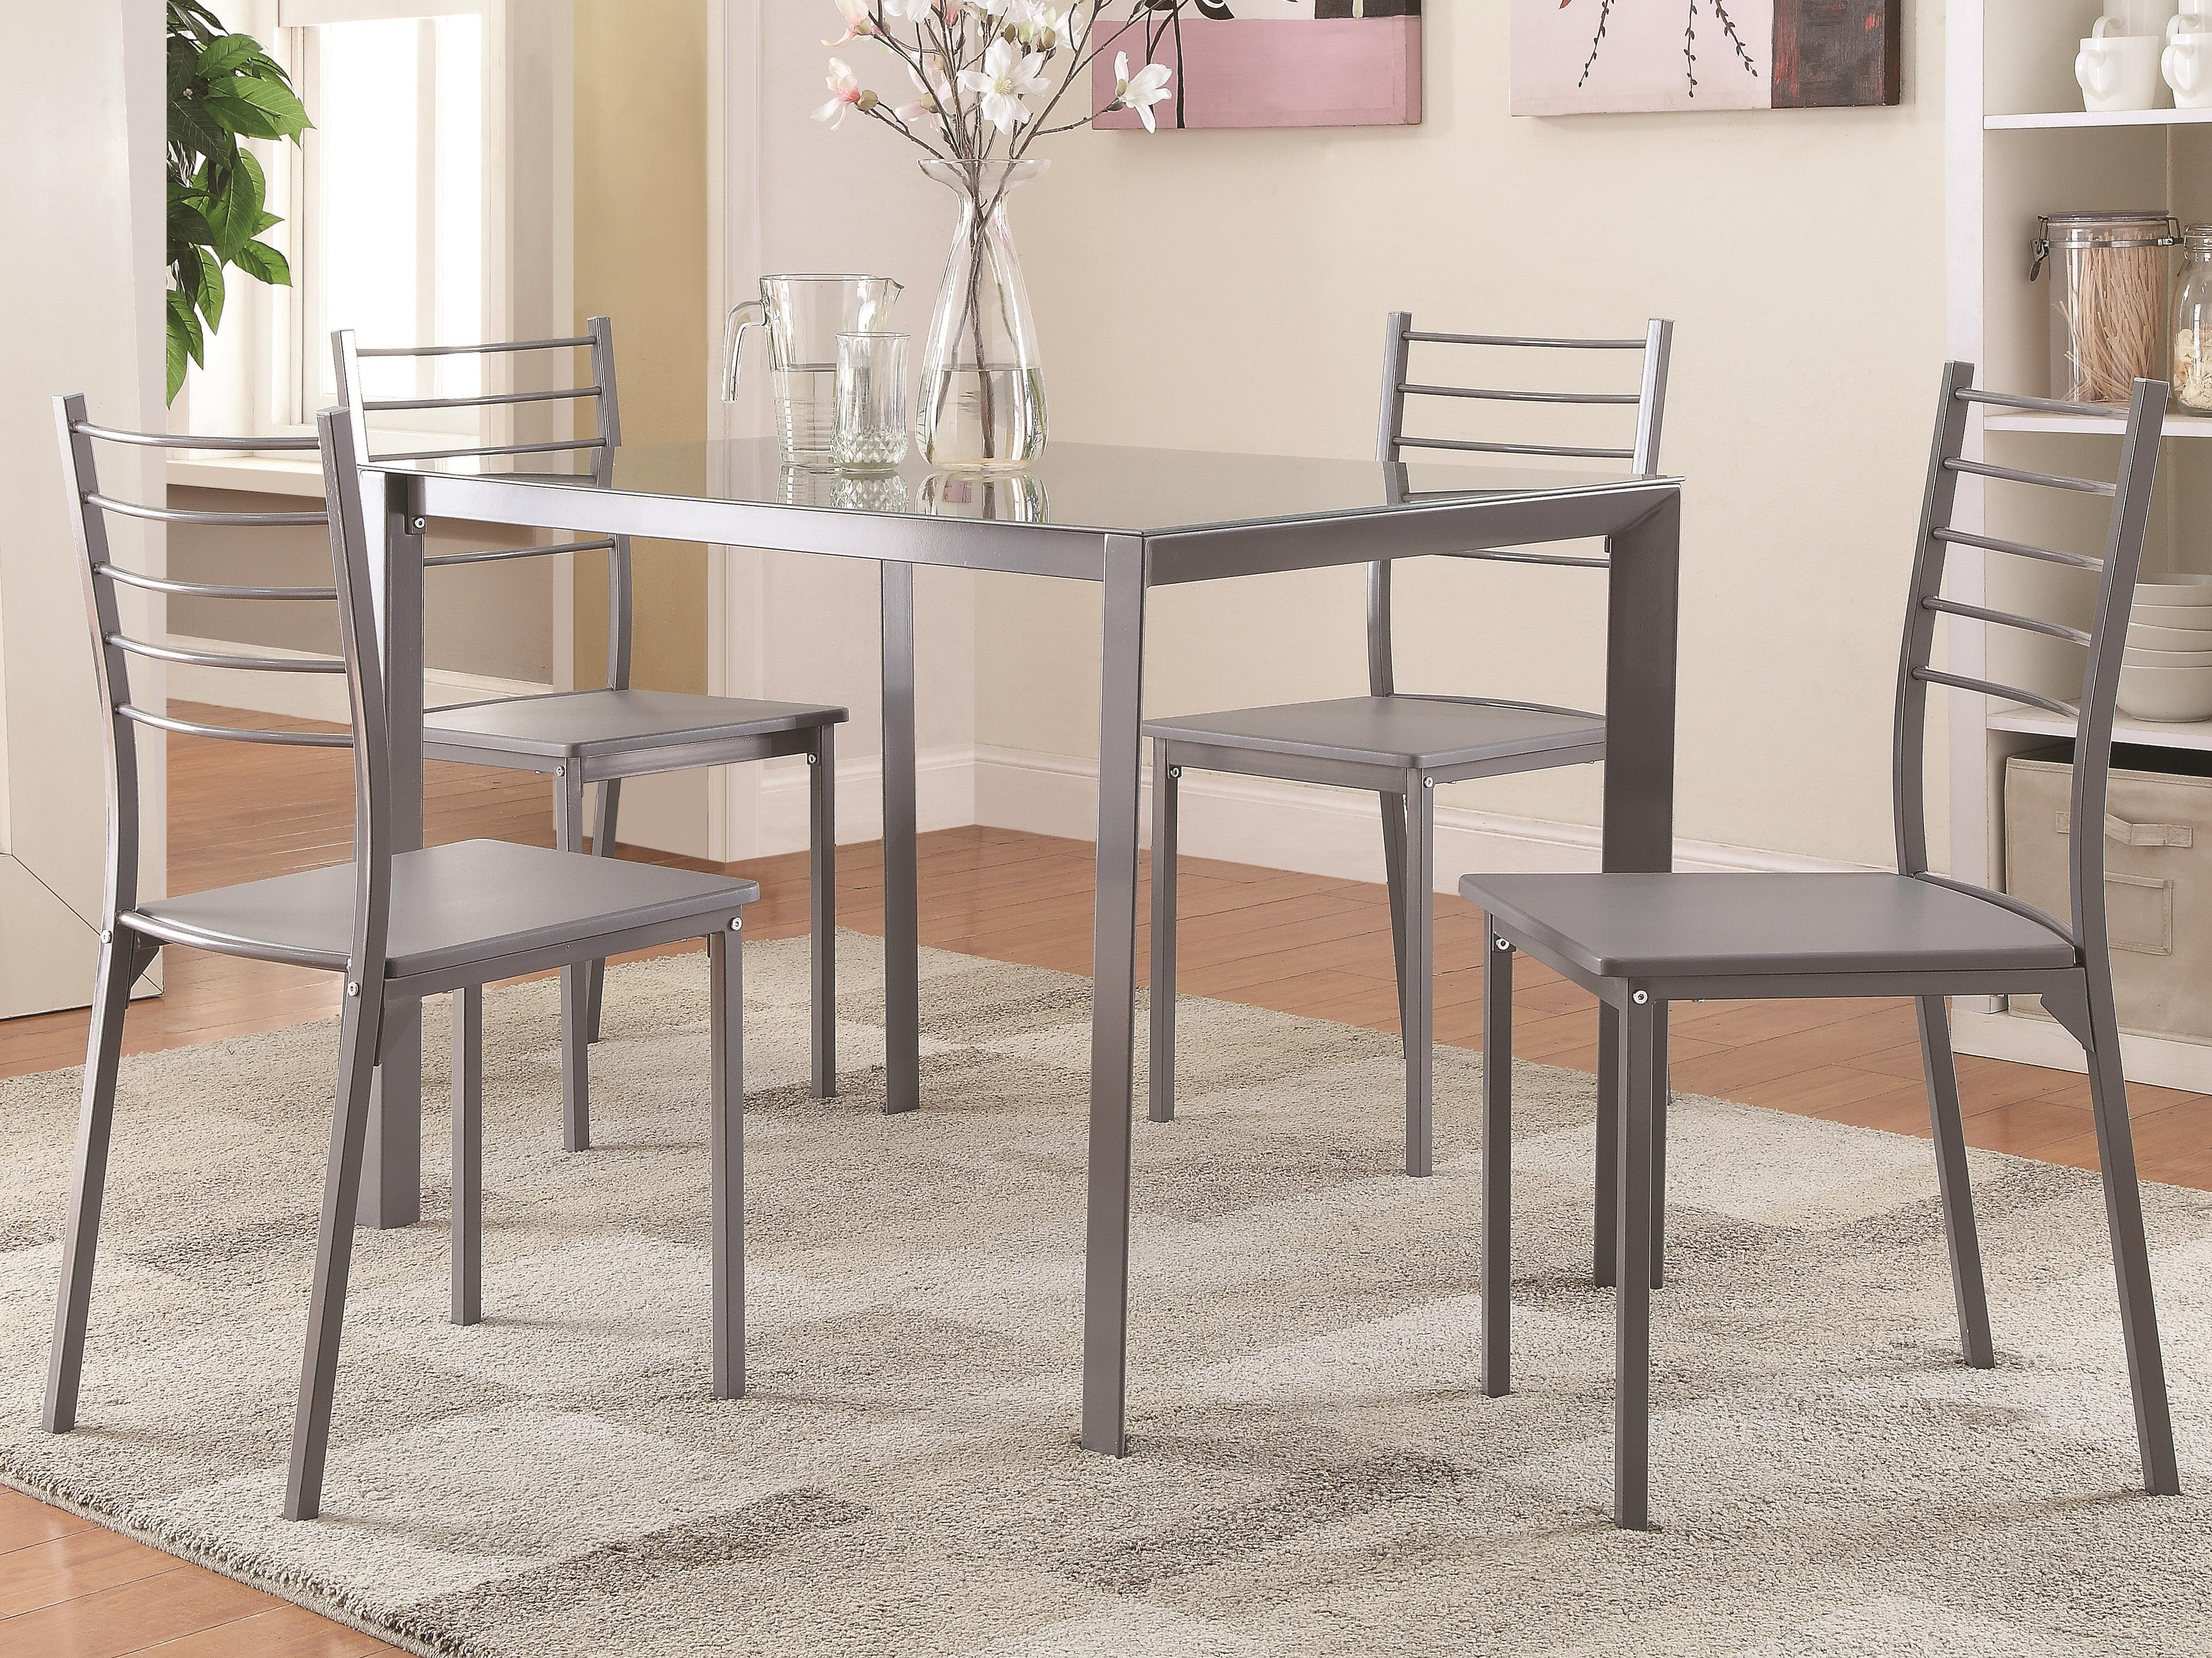 Coaster 100027 Table and Chair Set - Item Number: 100027